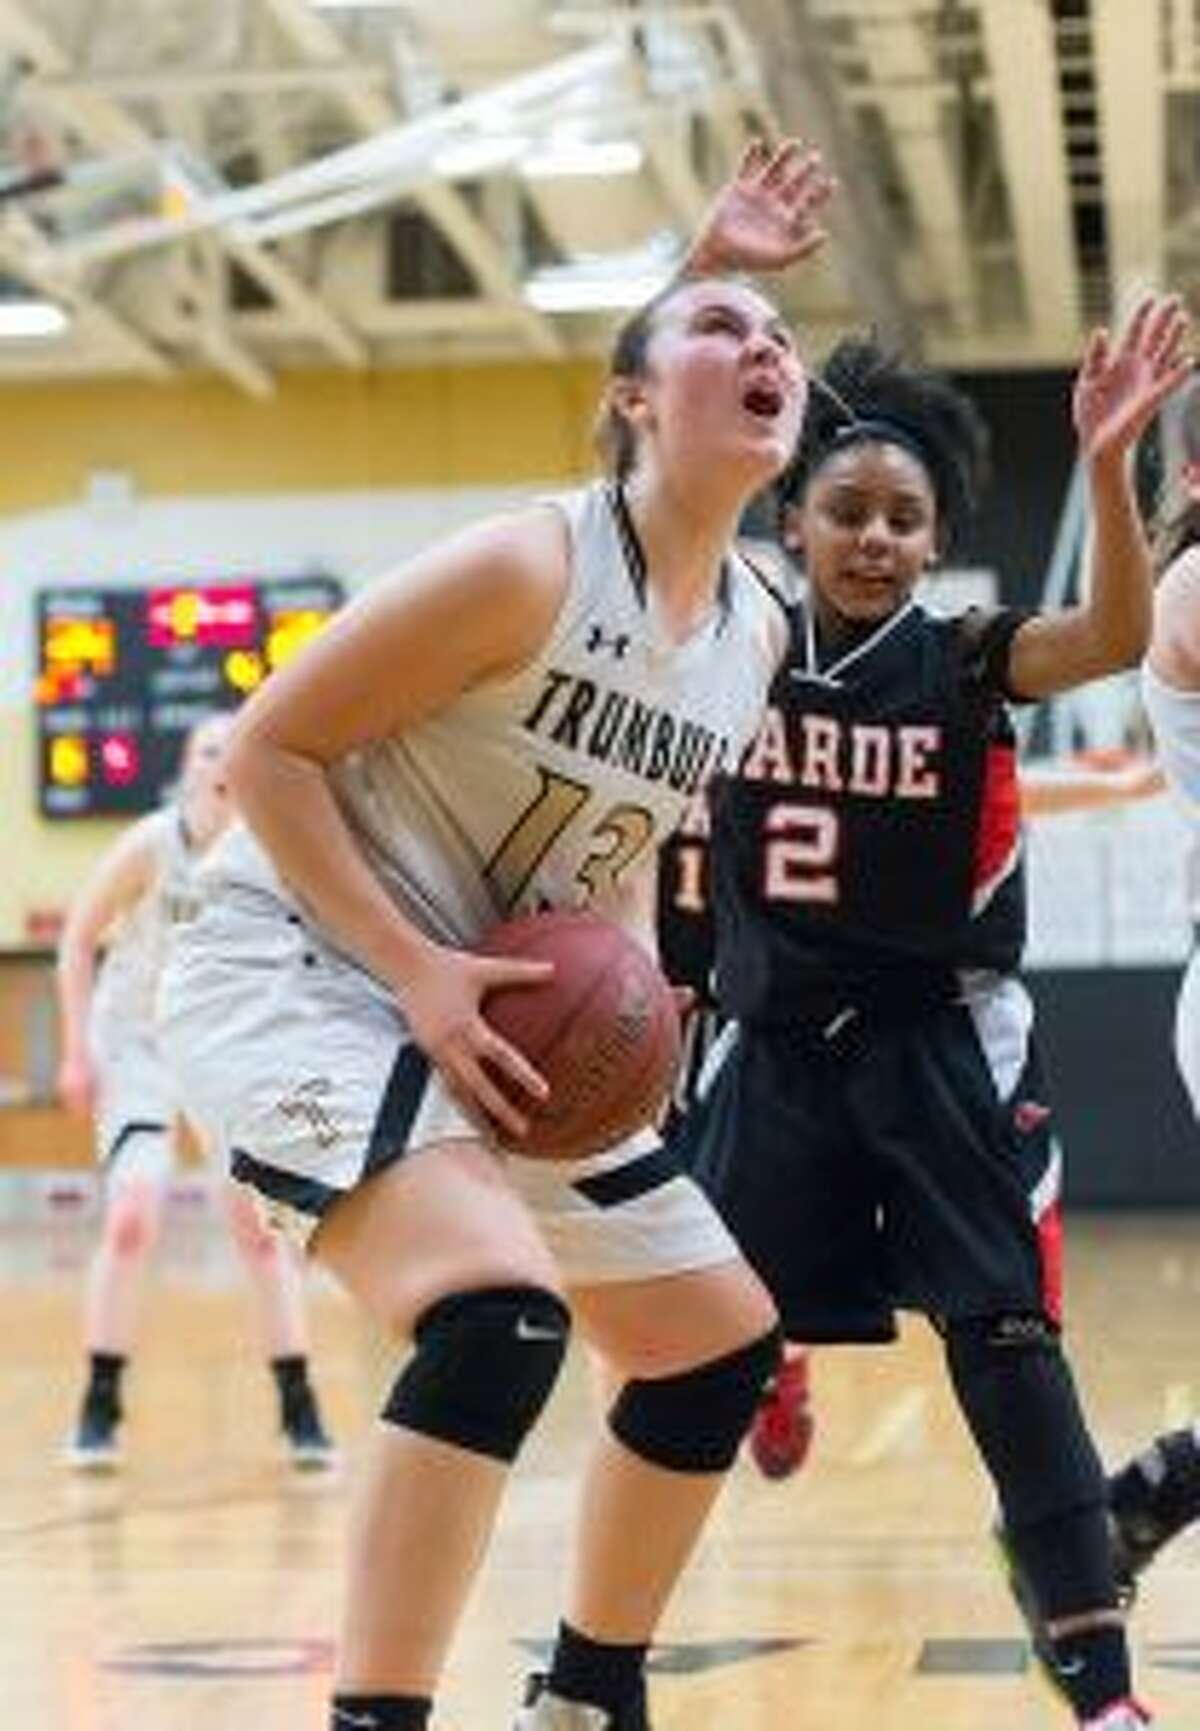 Trumbull's Claudia Tucci gets to the basket, as Warde's Deja Polk defends. - David G. Whitham photos